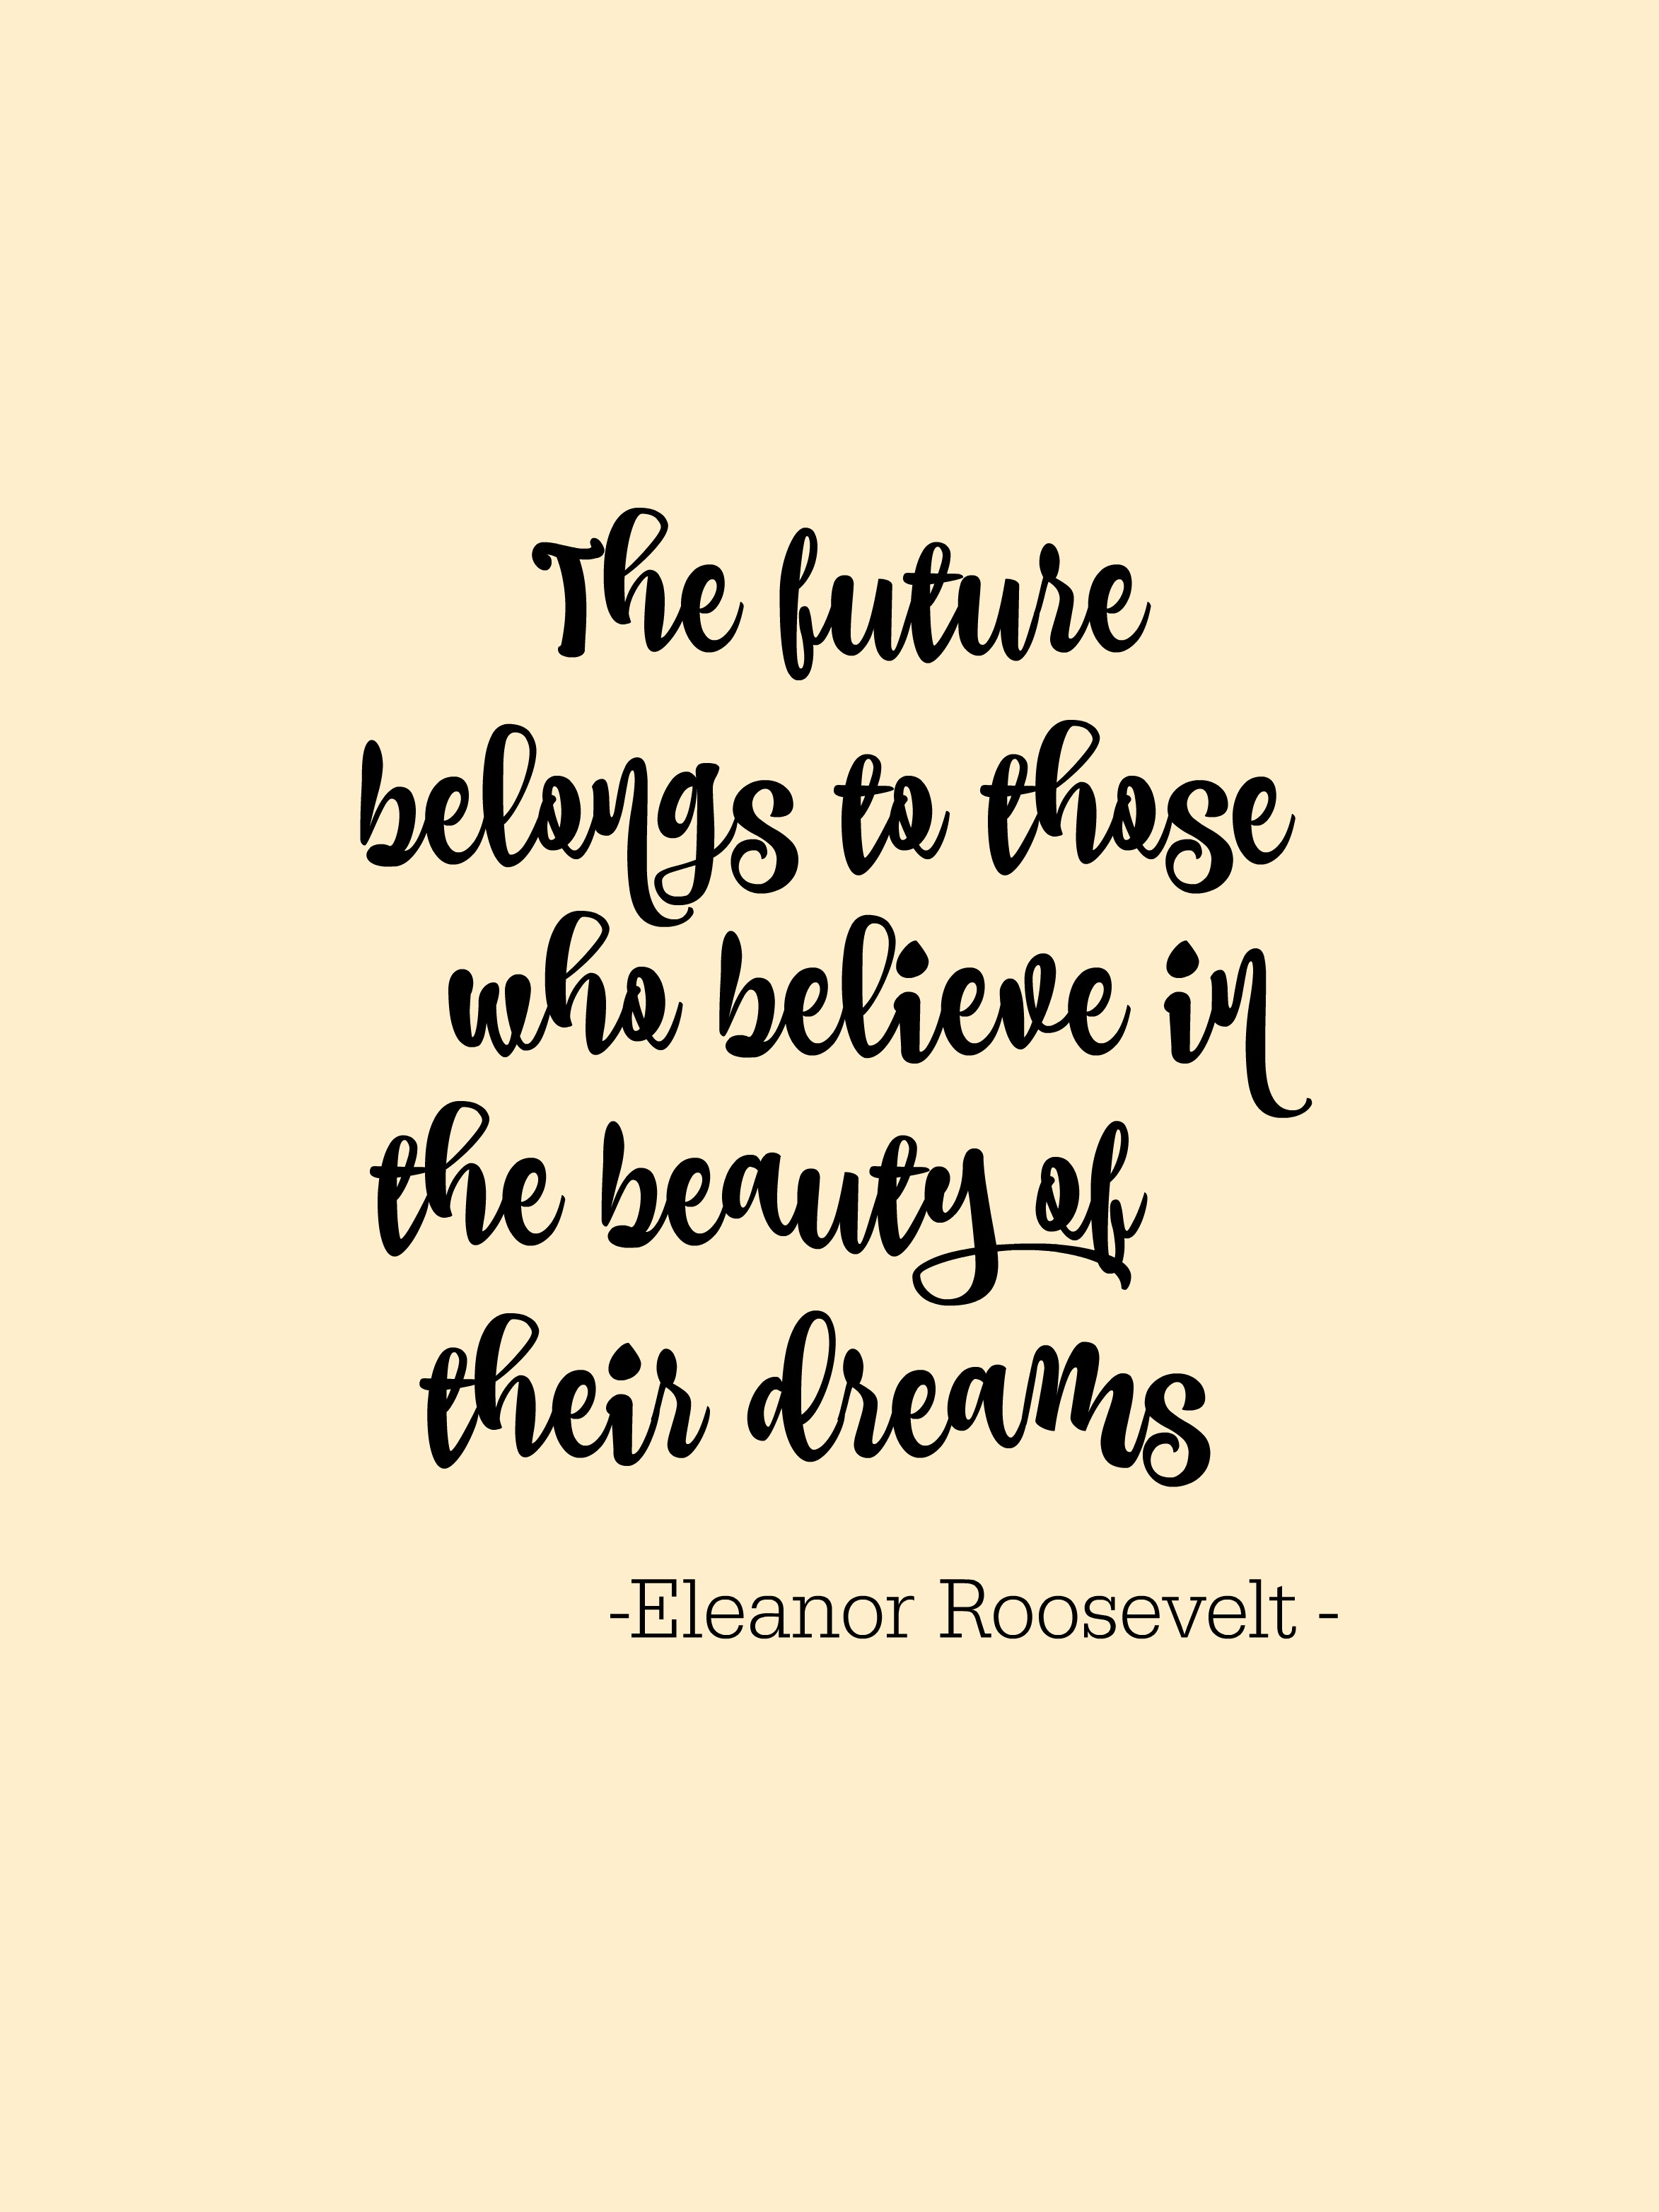 The future belongs to those who believe in the beauty of their dreams - Eleanor Roosevelt - Simple Sojourns #inspiration #quotes #printable #EleanorRoosevelt